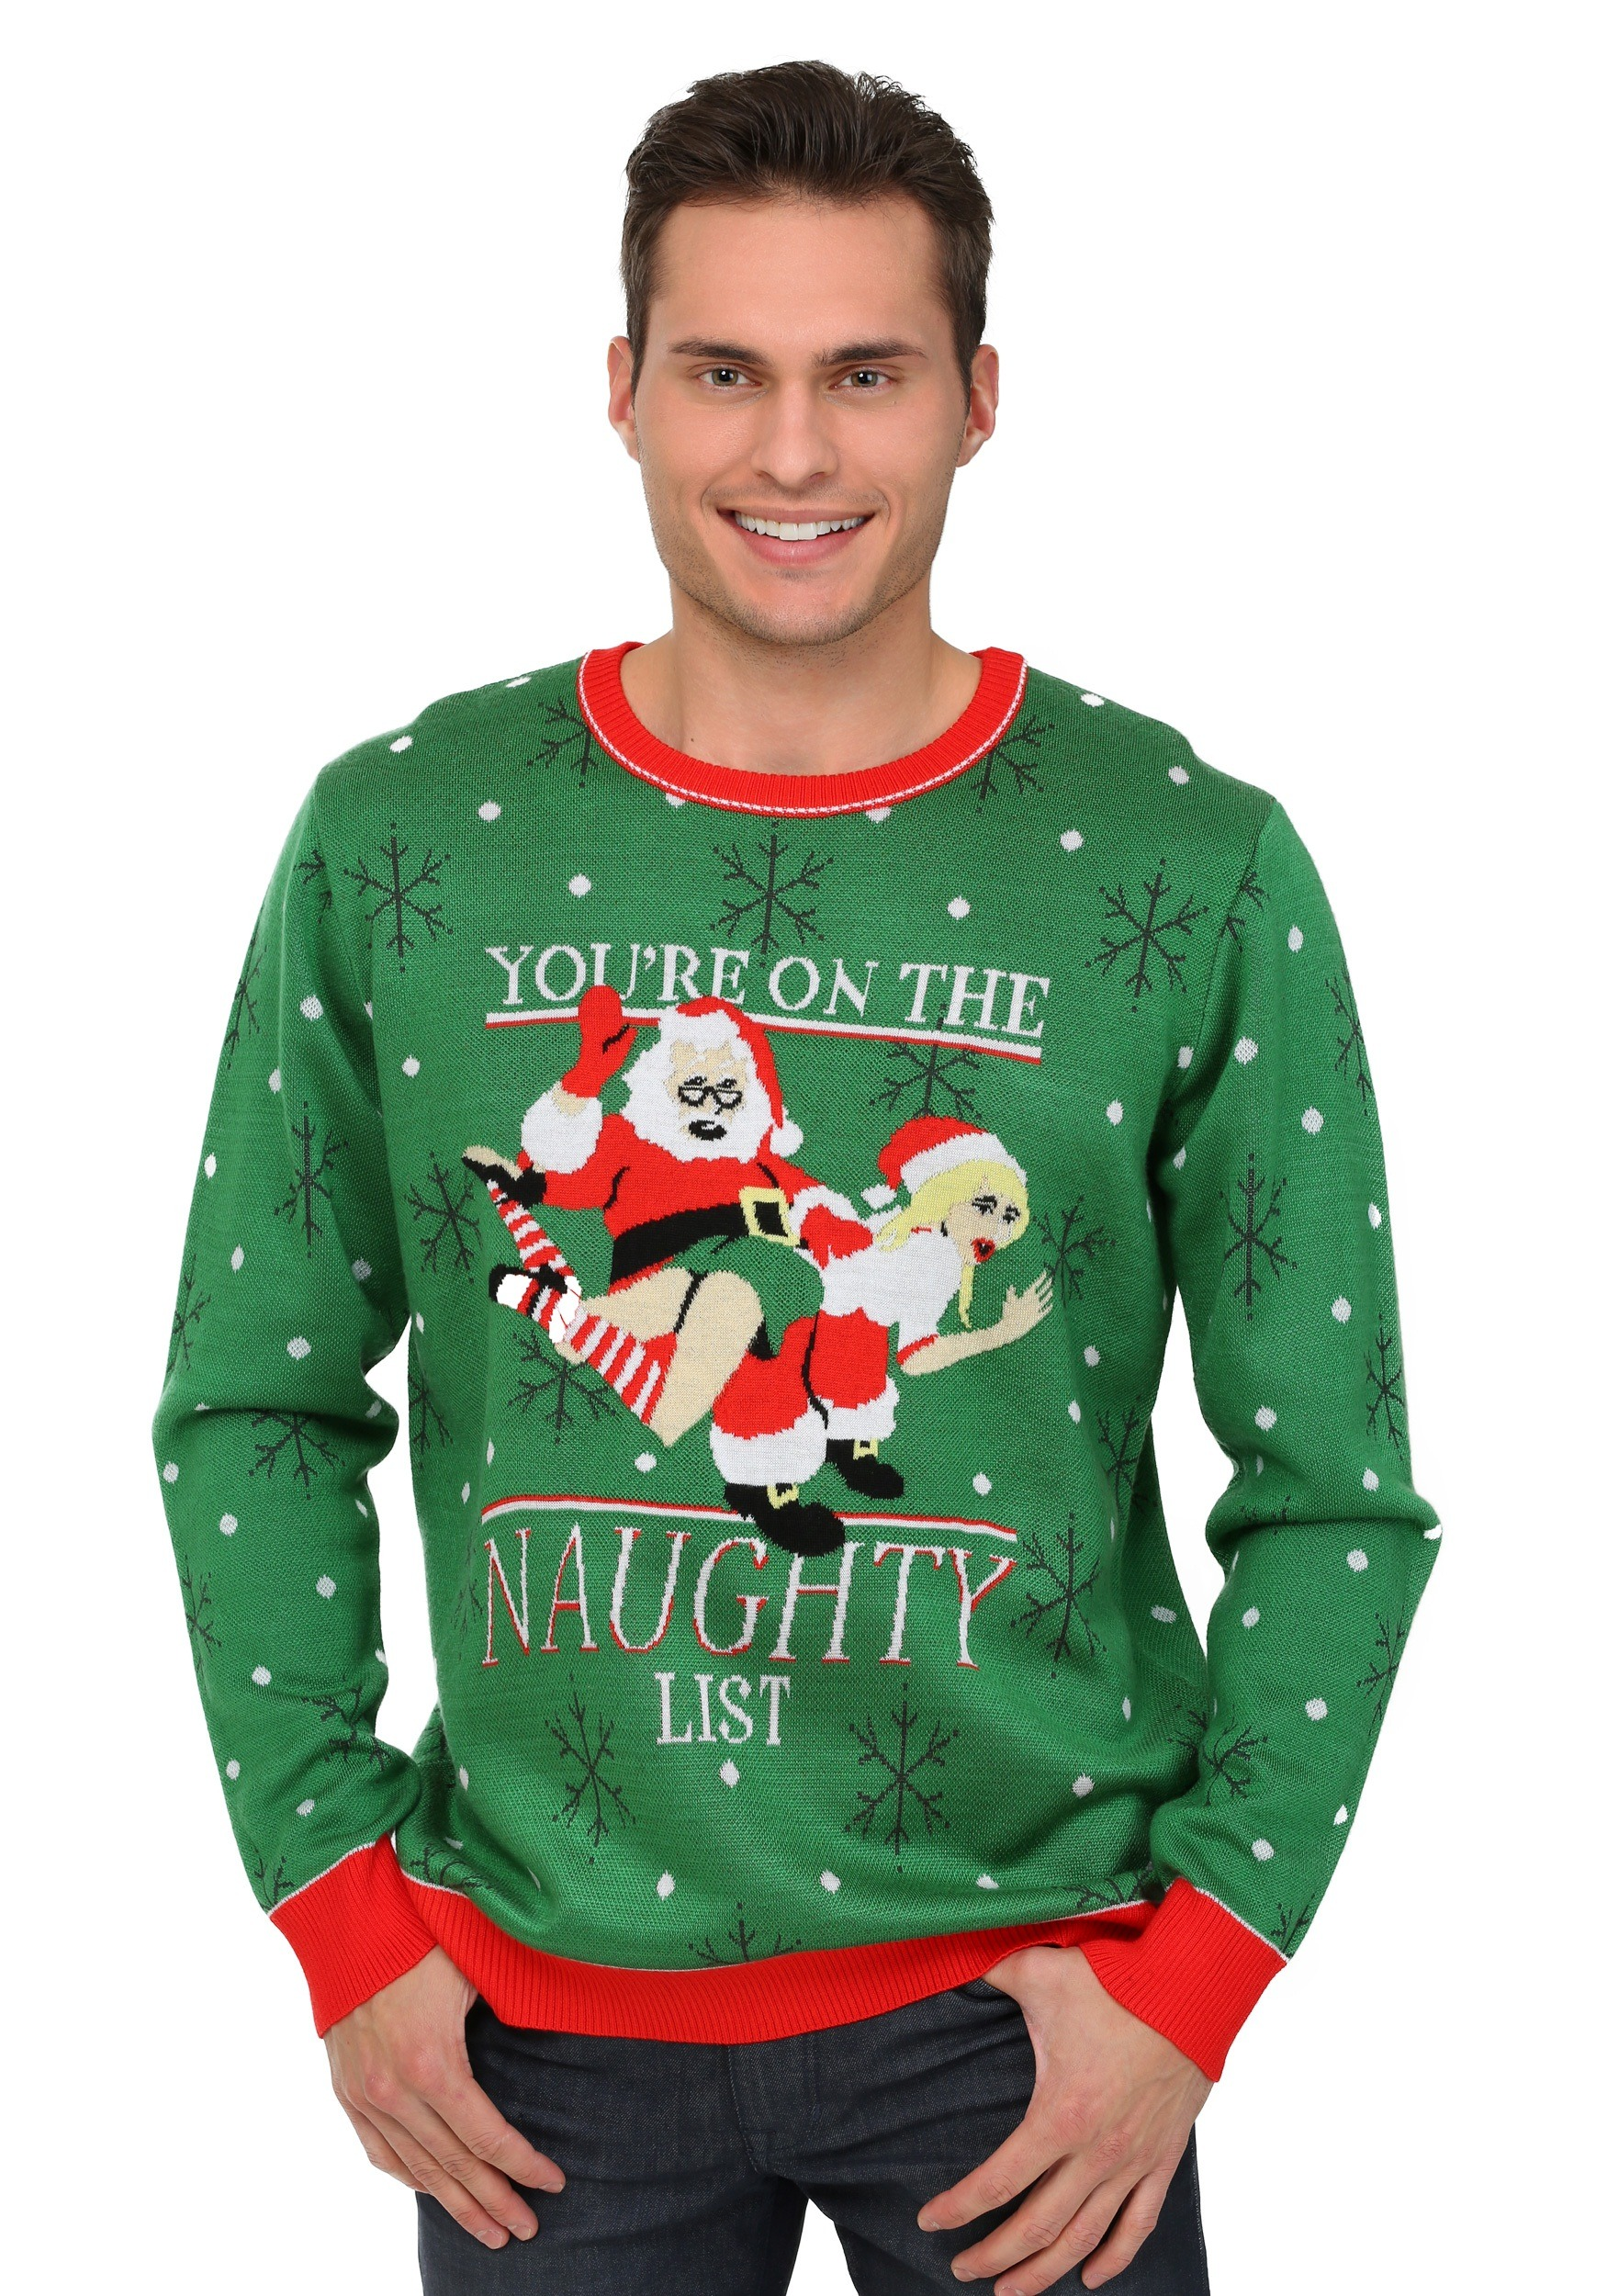 mens youre on the naughty list christmas sweater - Shark Christmas Sweater